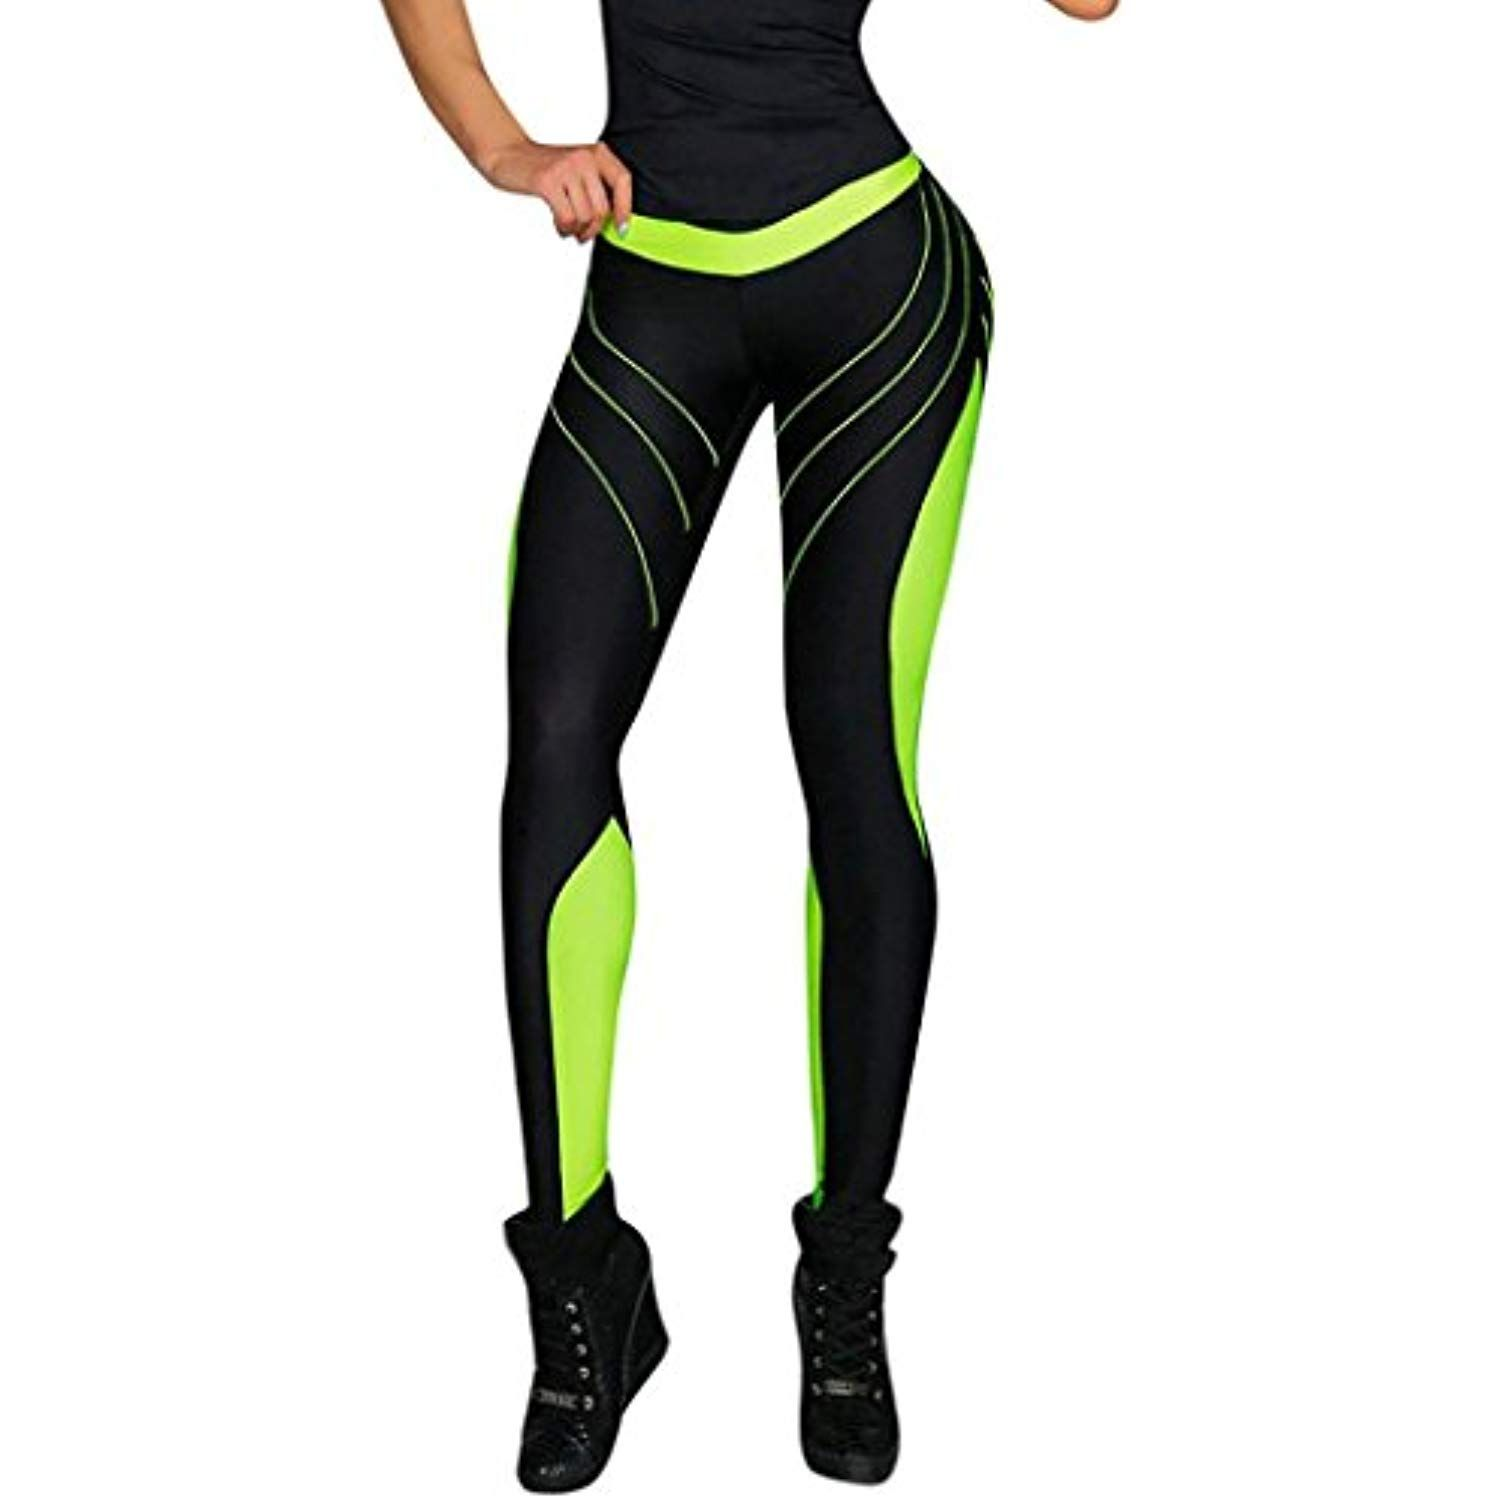 c741c1f8a3ce2 WELCOMEUNI Yoga Pants for Women High Waist 90 Degree by Reflex Fitness  Elastic Sport Gym Leggings >>> You can get more details by clicking on the  image.